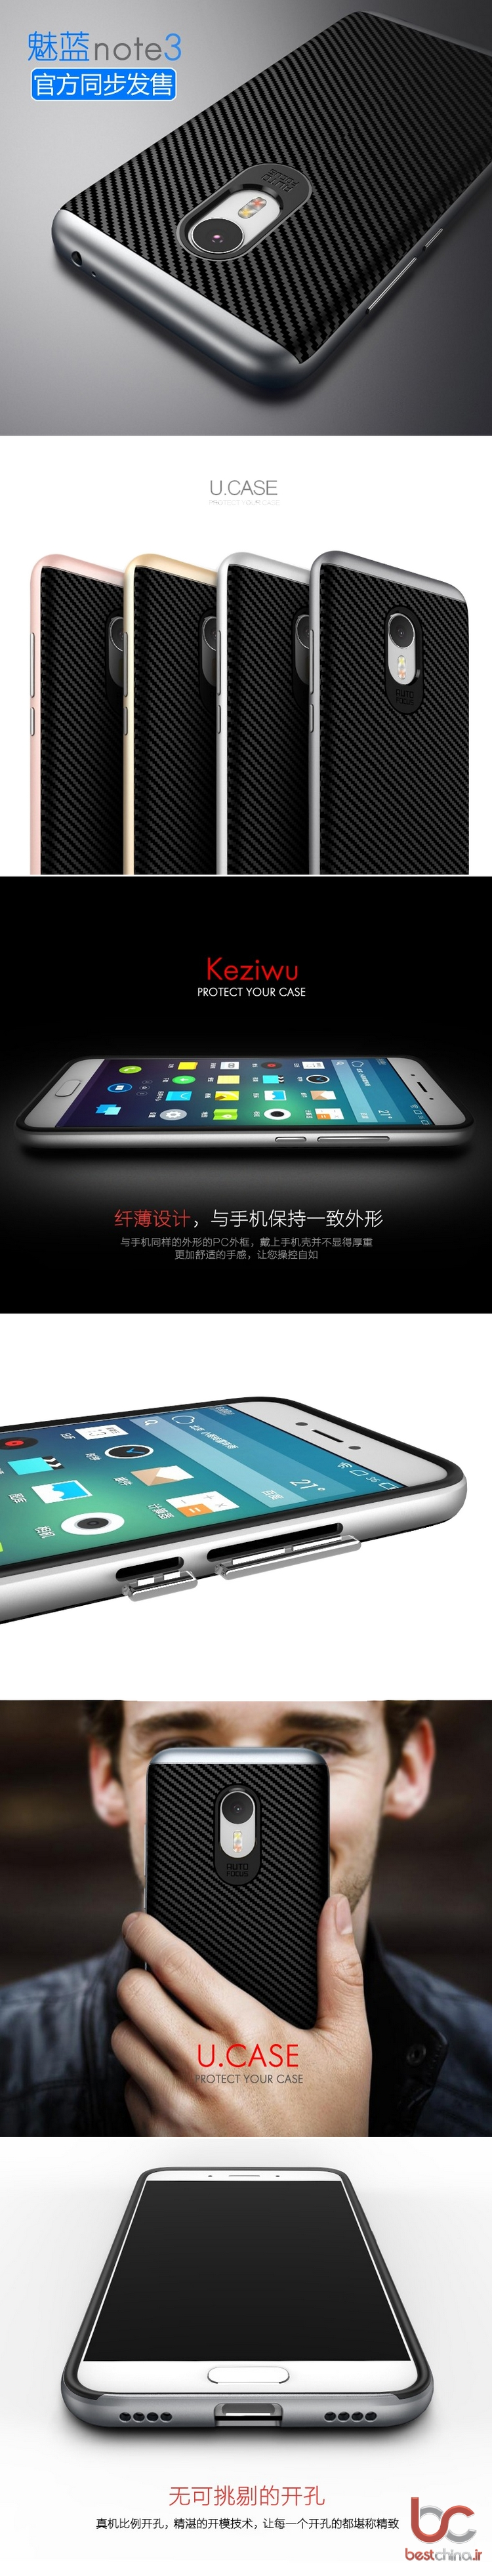 Meizu M3 Note iPaky Back Cover (1)